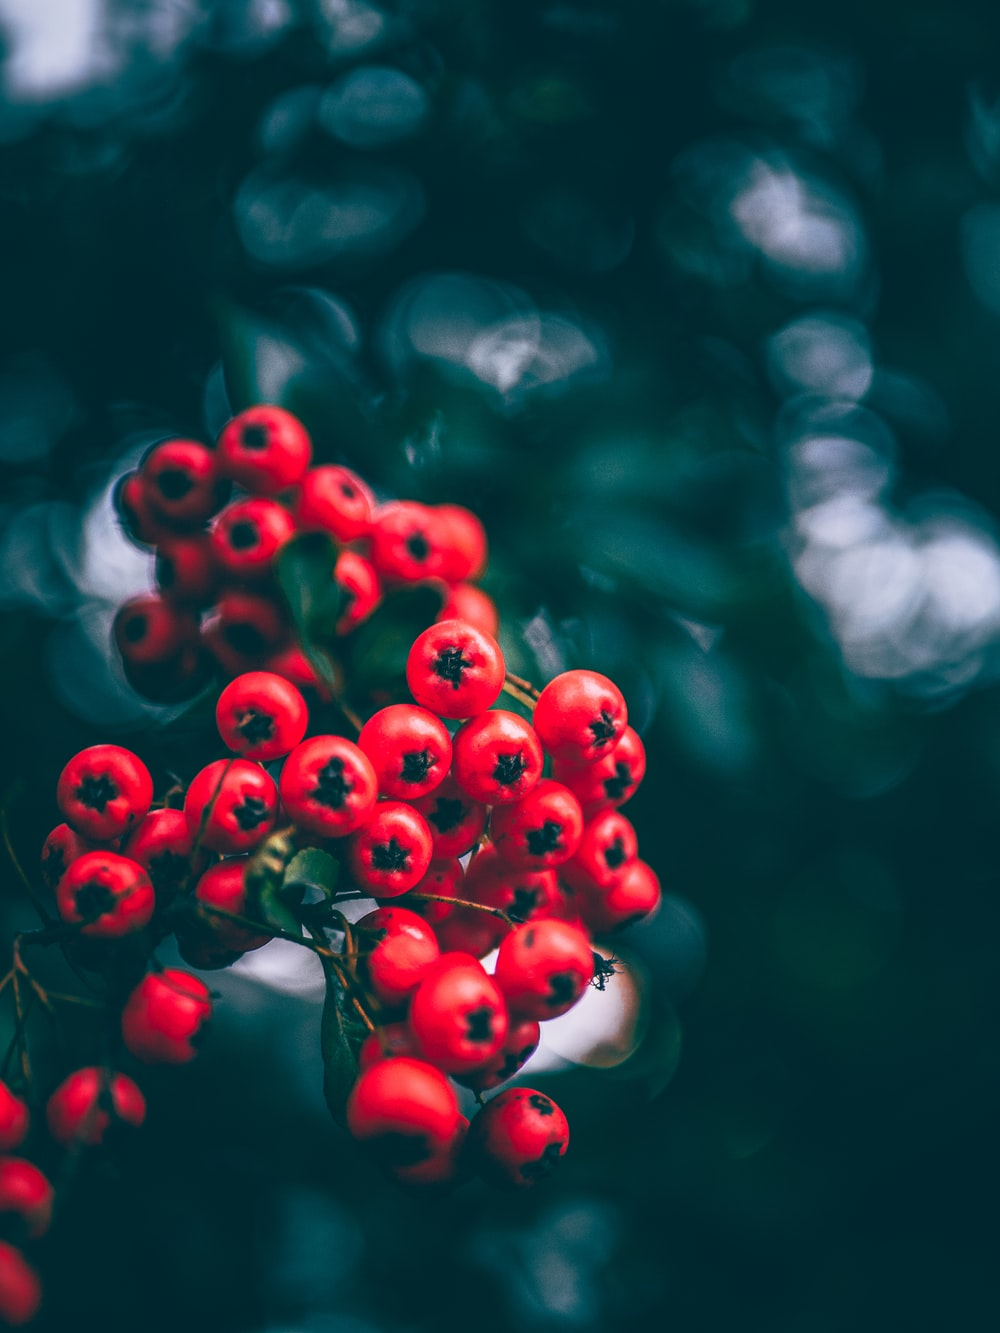 selective focus photography of round red fruits